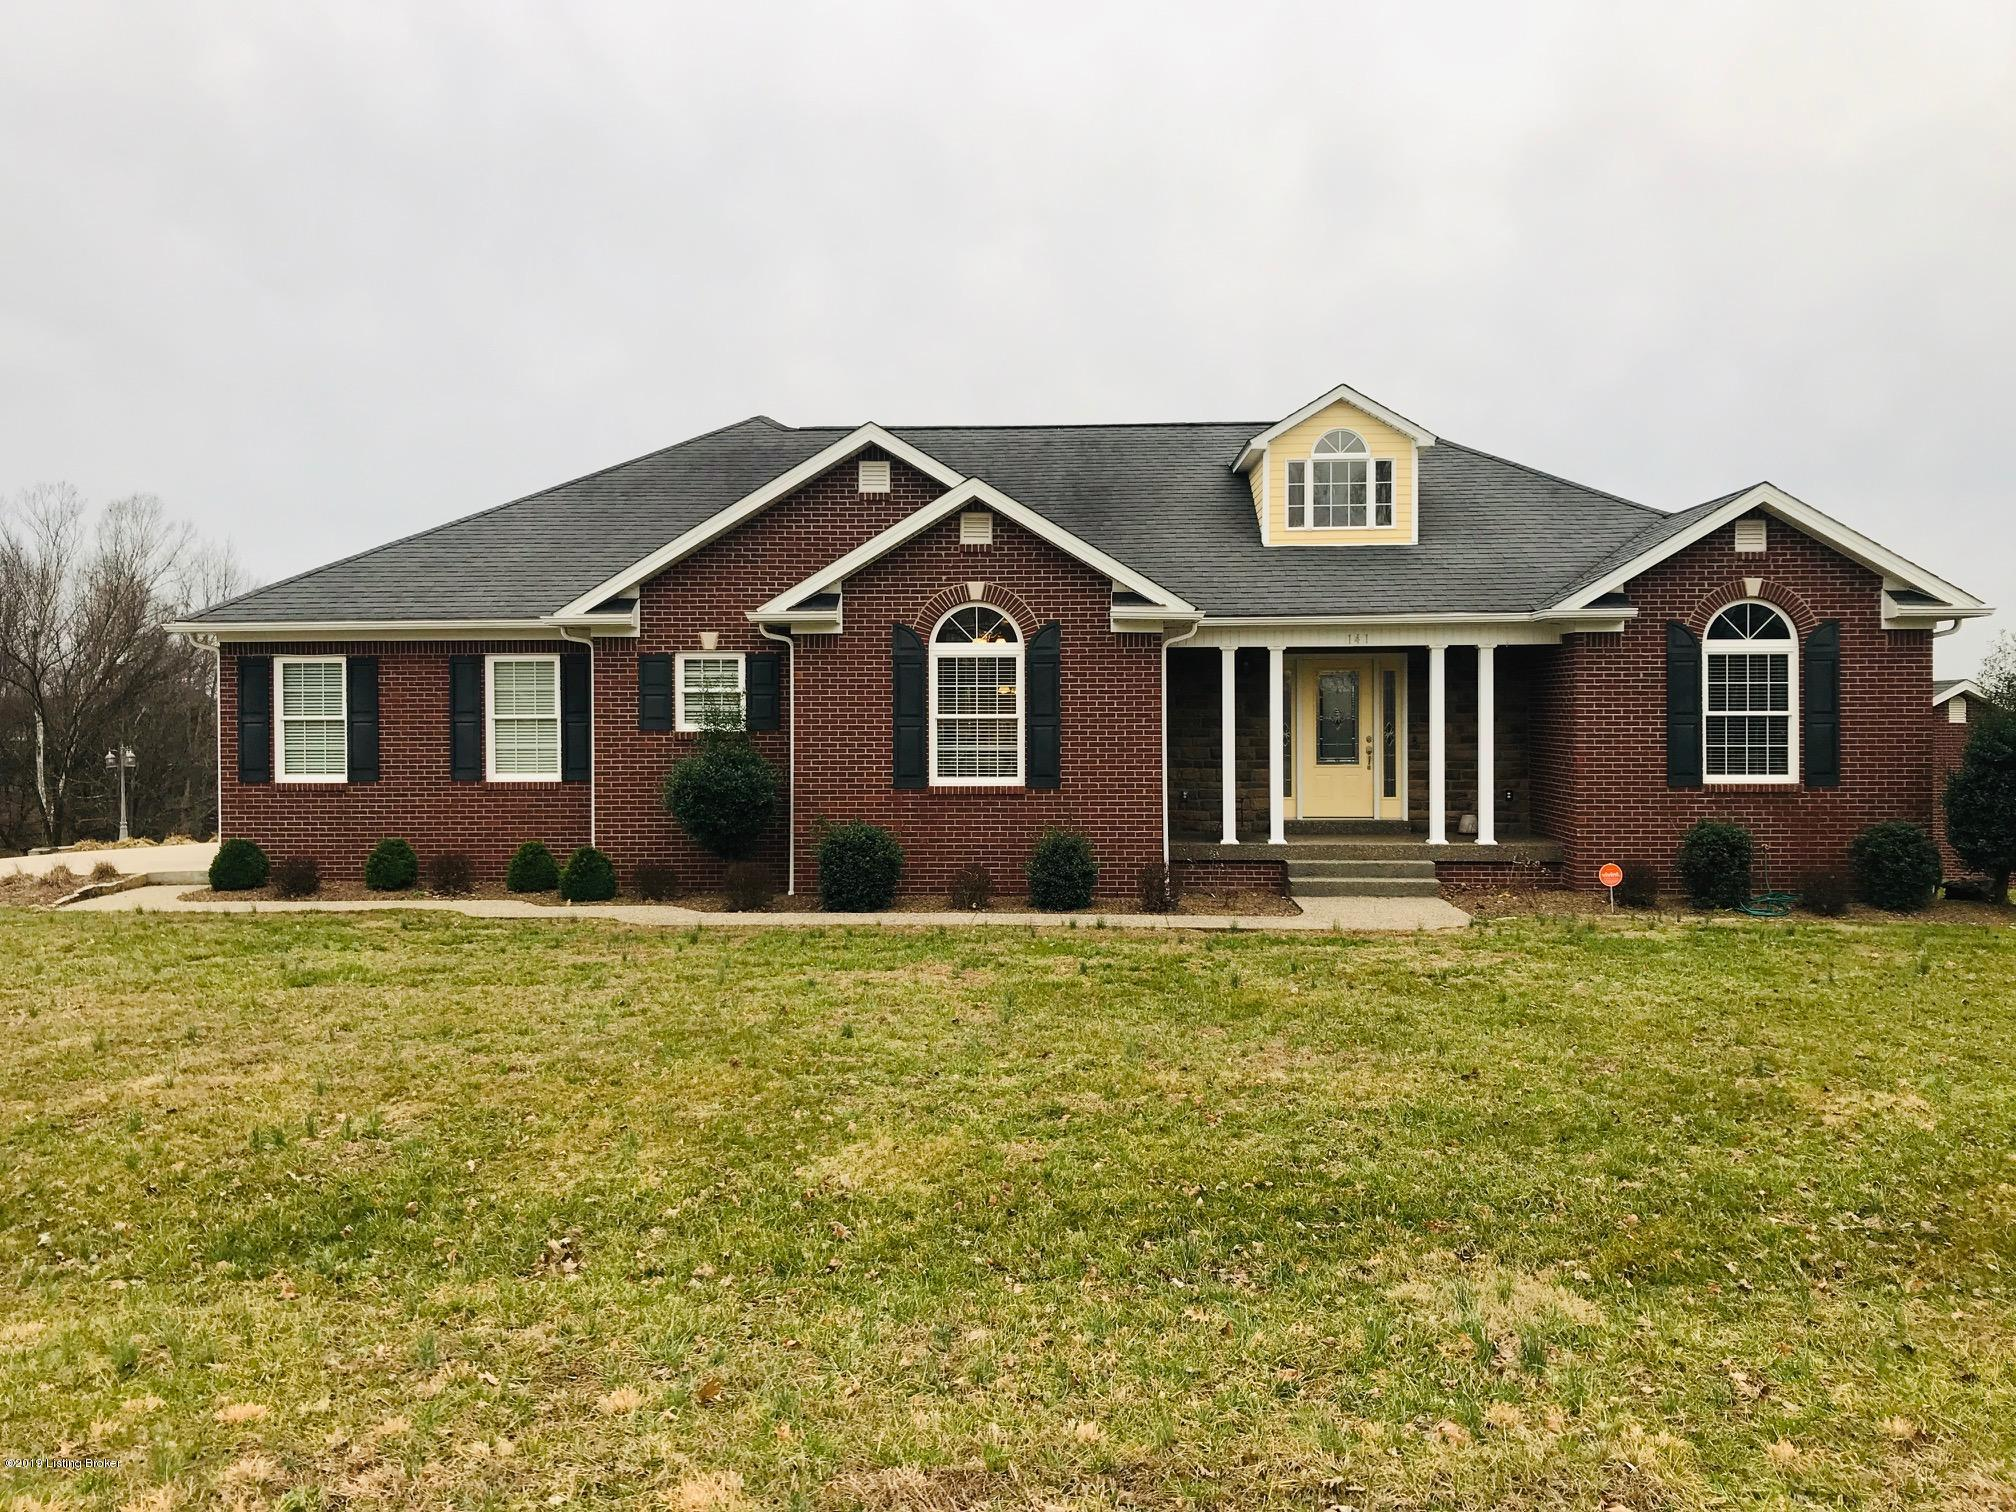 141 Beechfork Trail, Bardstown, Kentucky 40004, 3 Bedrooms Bedrooms, 8 Rooms Rooms,3 BathroomsBathrooms,Residential,For Sale,Beechfork,1525251